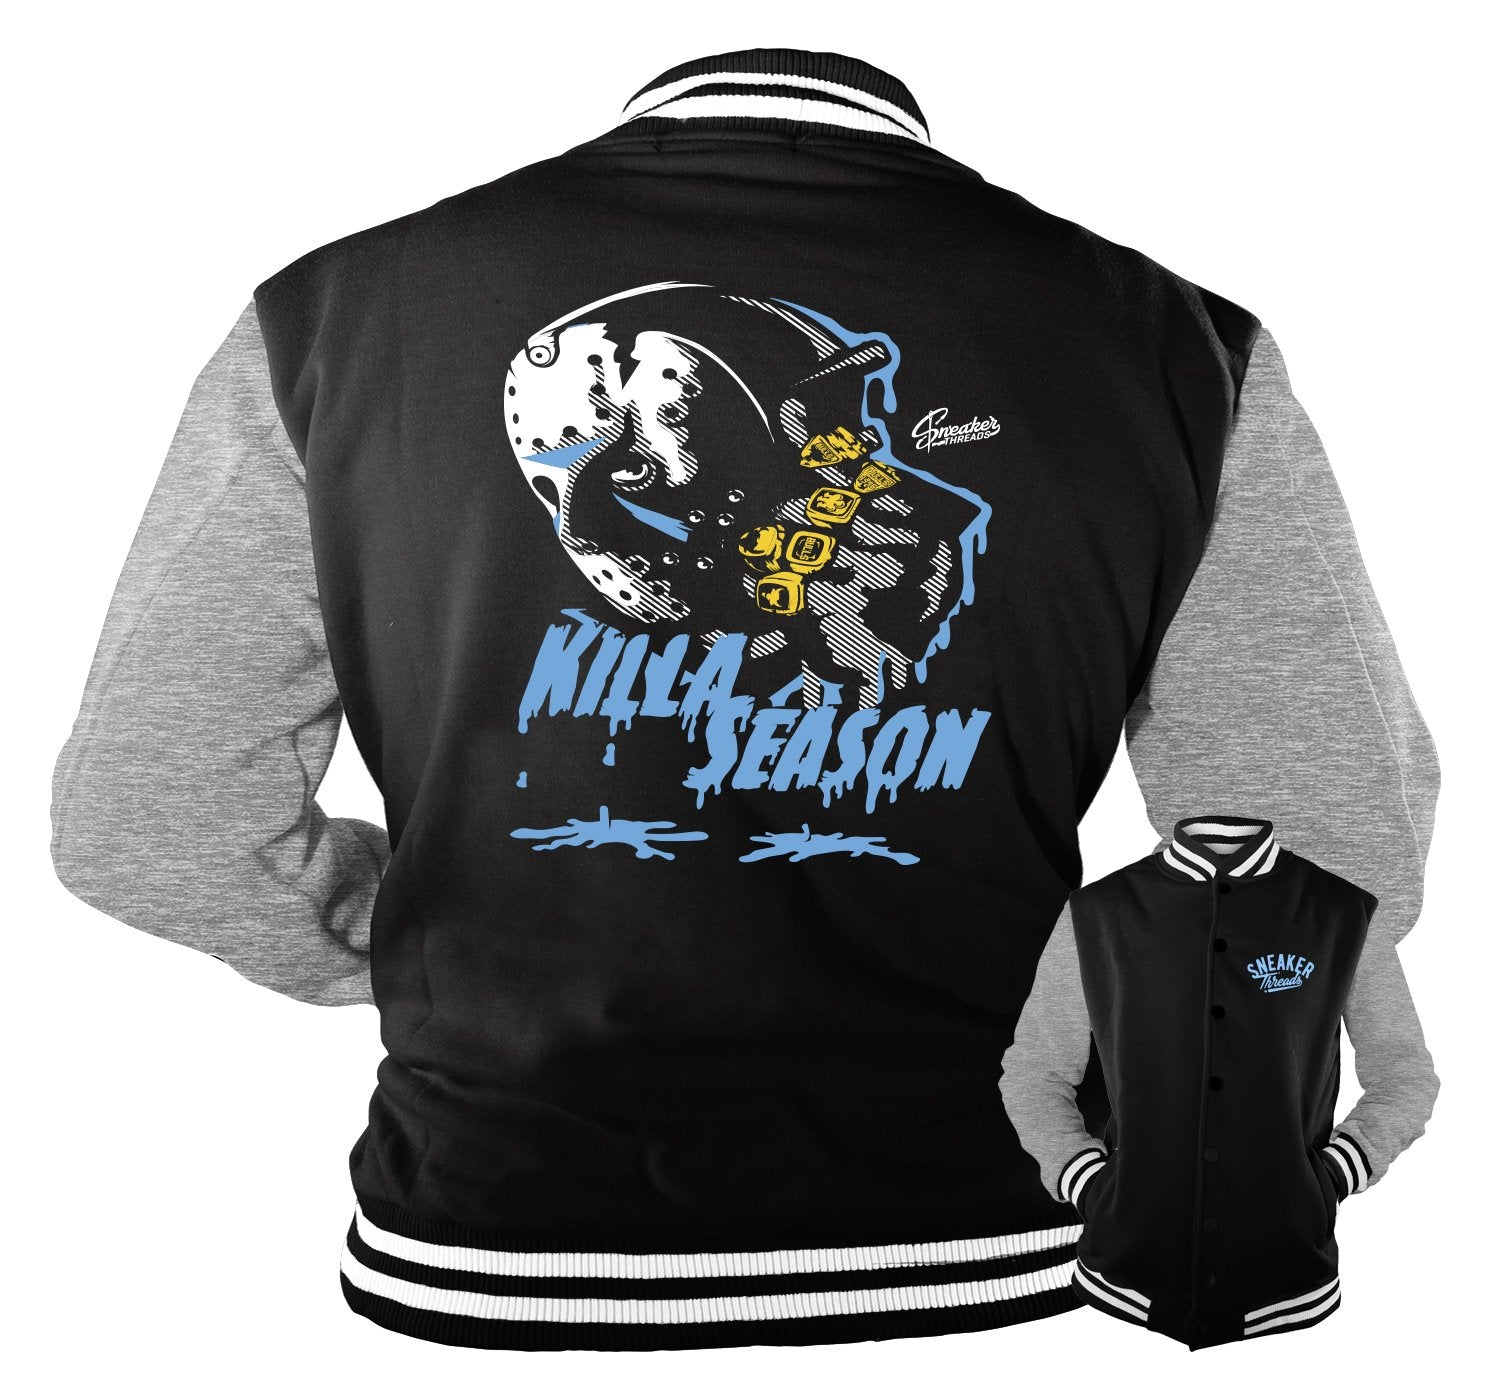 Jackets match Jordan 3 UNC sneakers | Retro 3 coat match